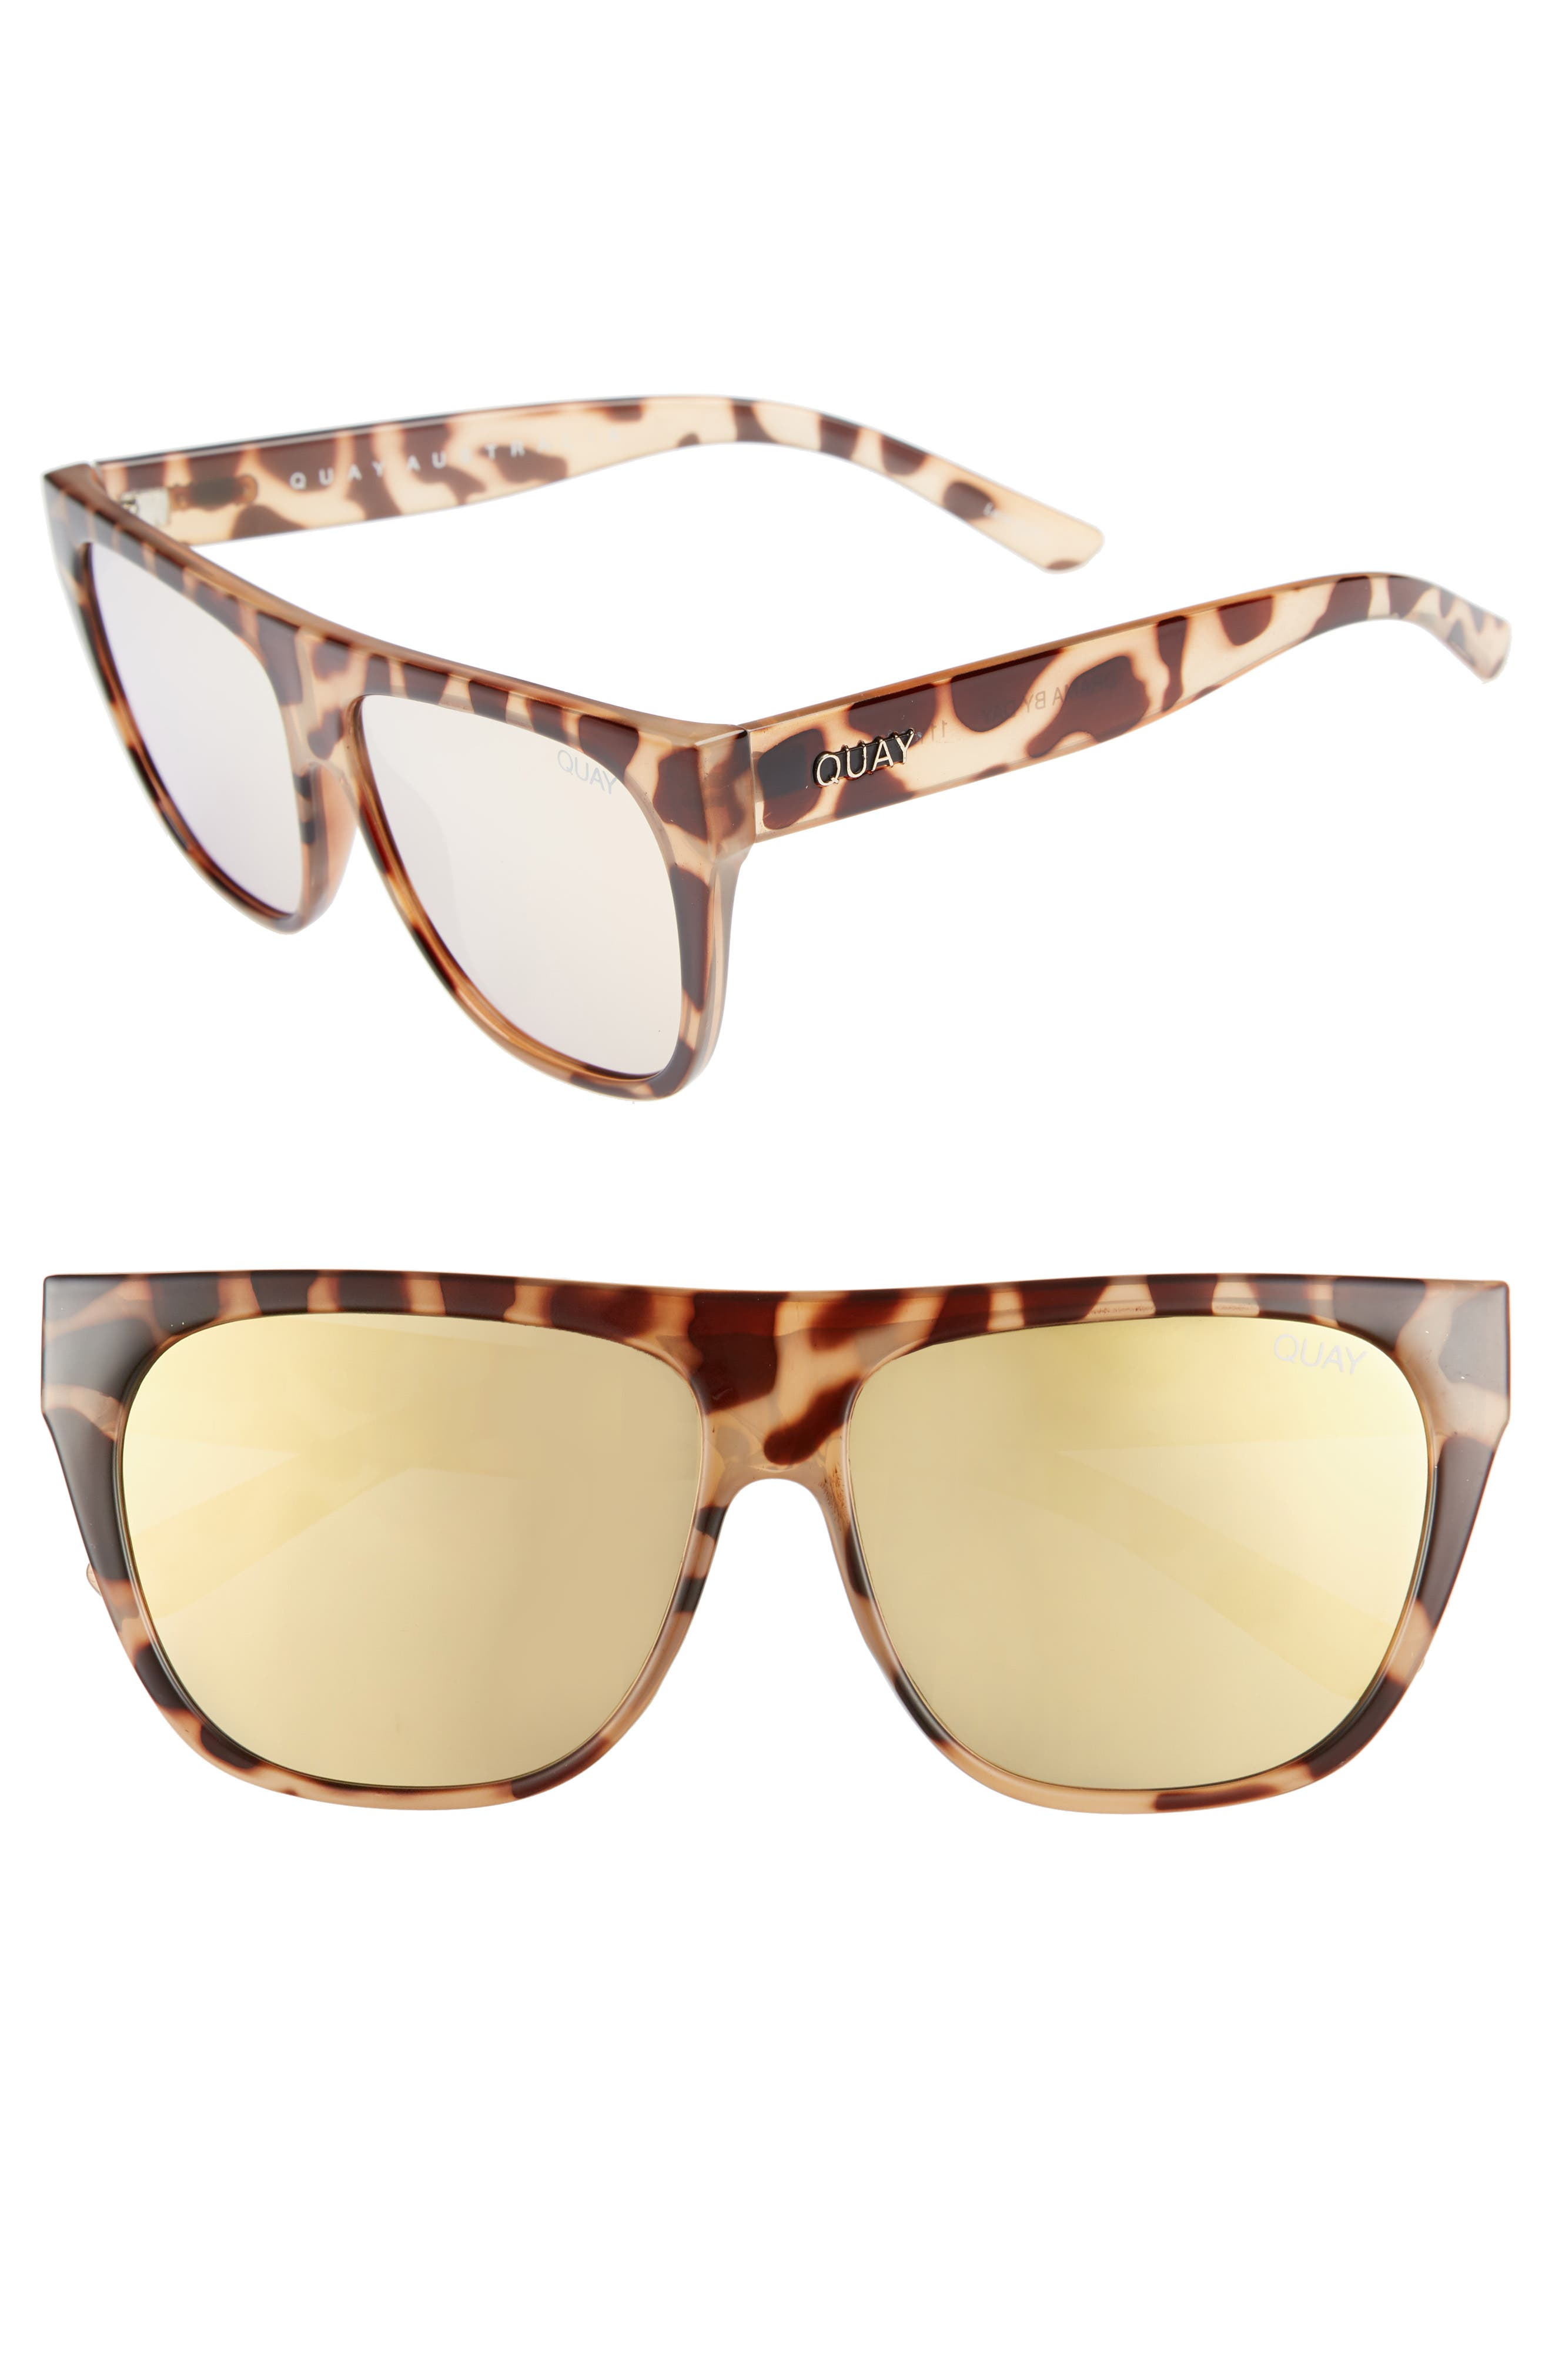 Drama by Day 55mm Square Sunglasses,                             Main thumbnail 1, color,                             TORT/ GOLD